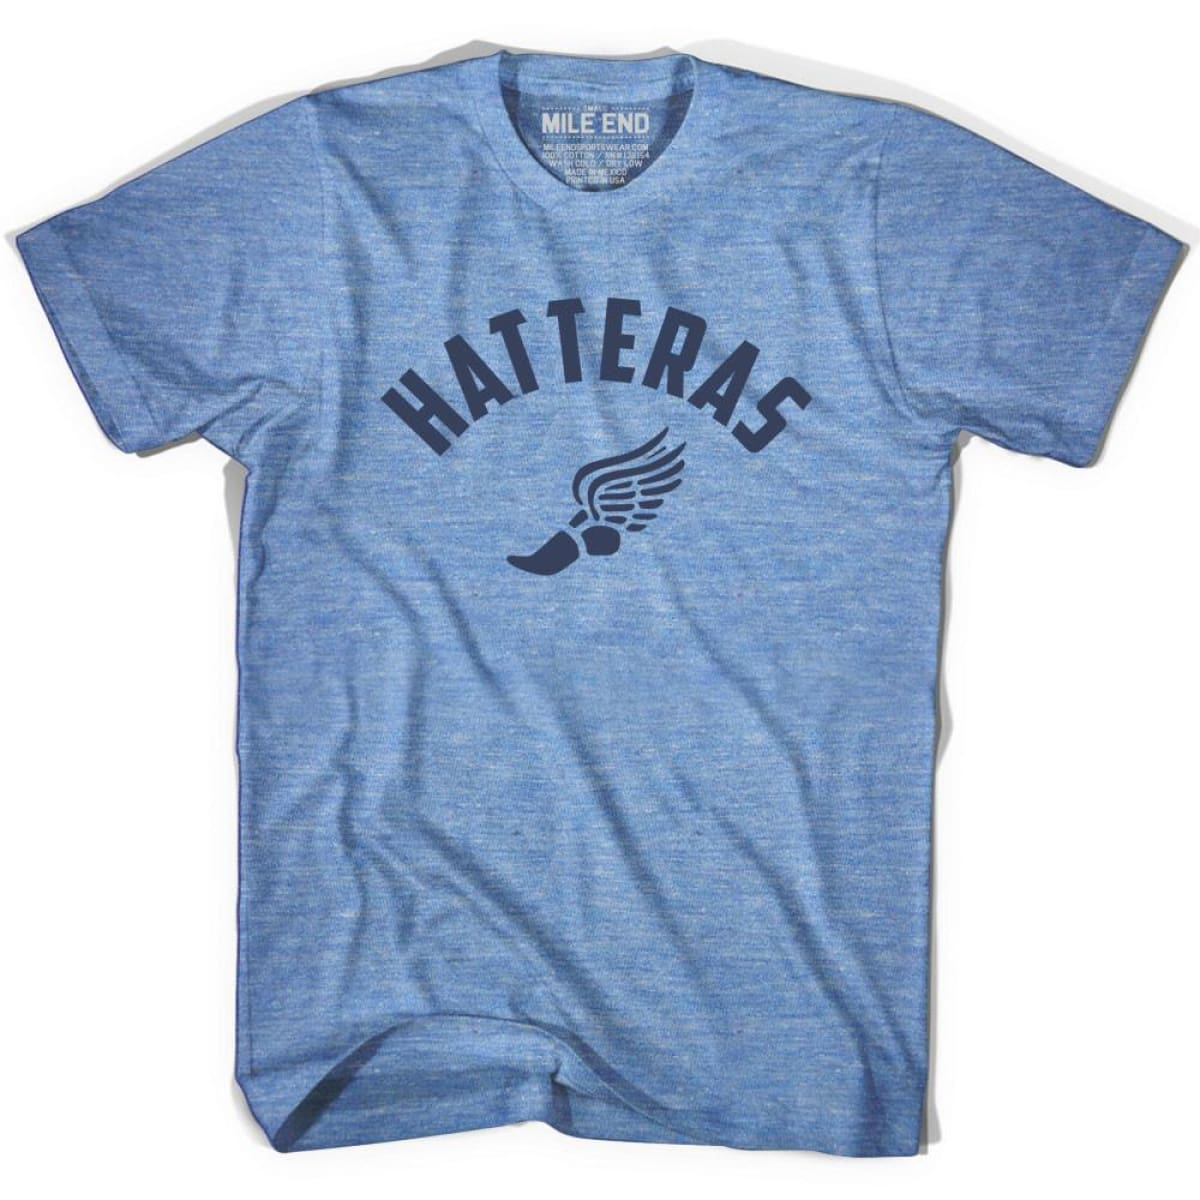 Hatteras Track T-shirt - Athletic Blue / Adult X-Small - Mile End Track